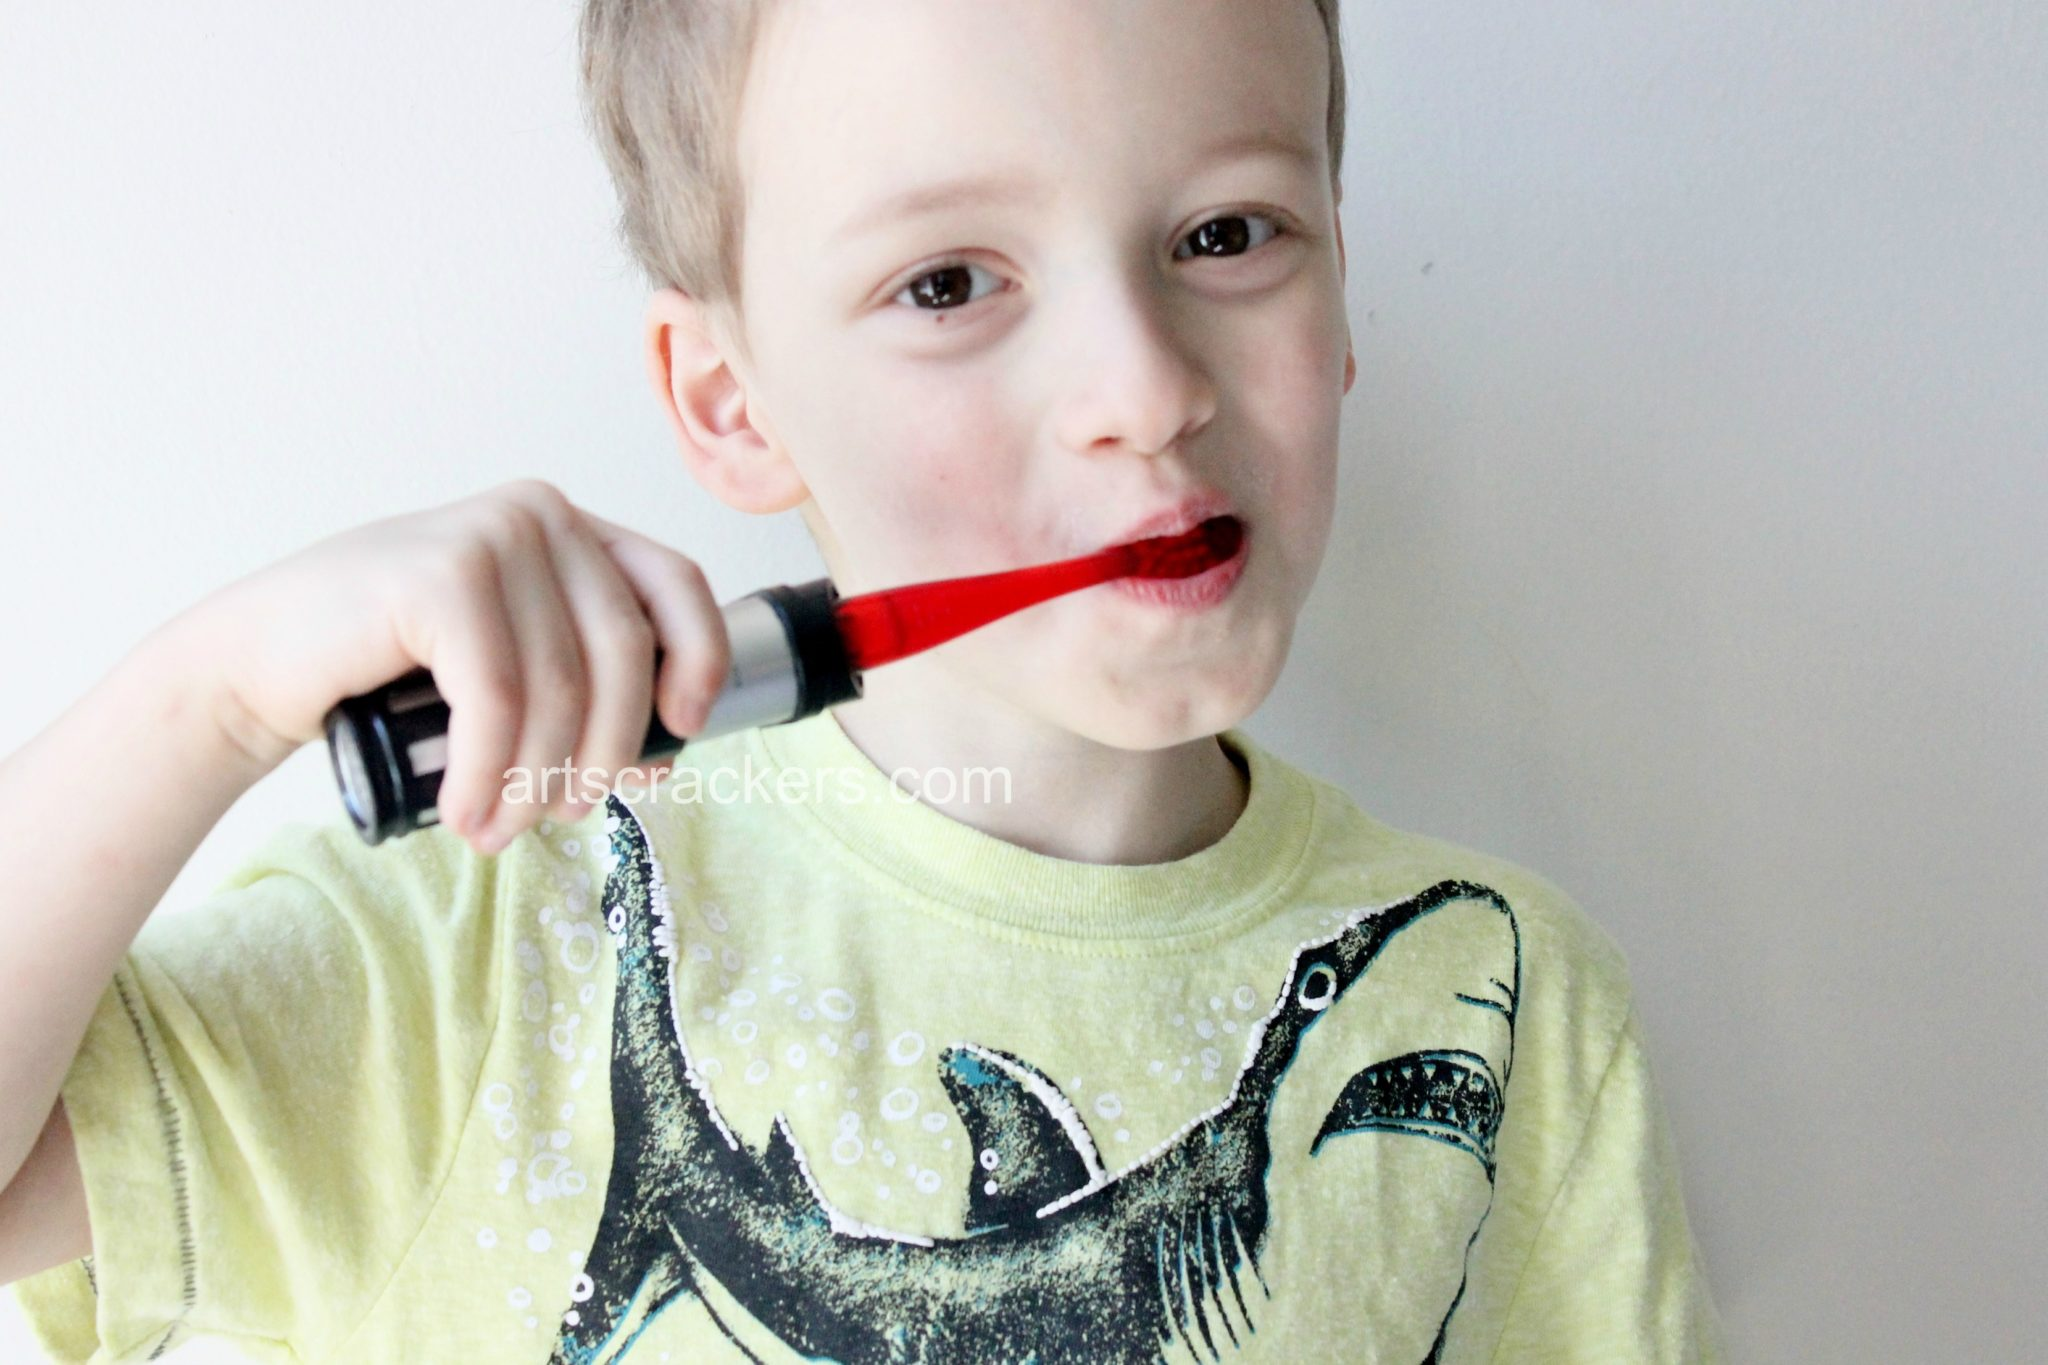 Firefly Toothbrushes Star Wars Darth Vader